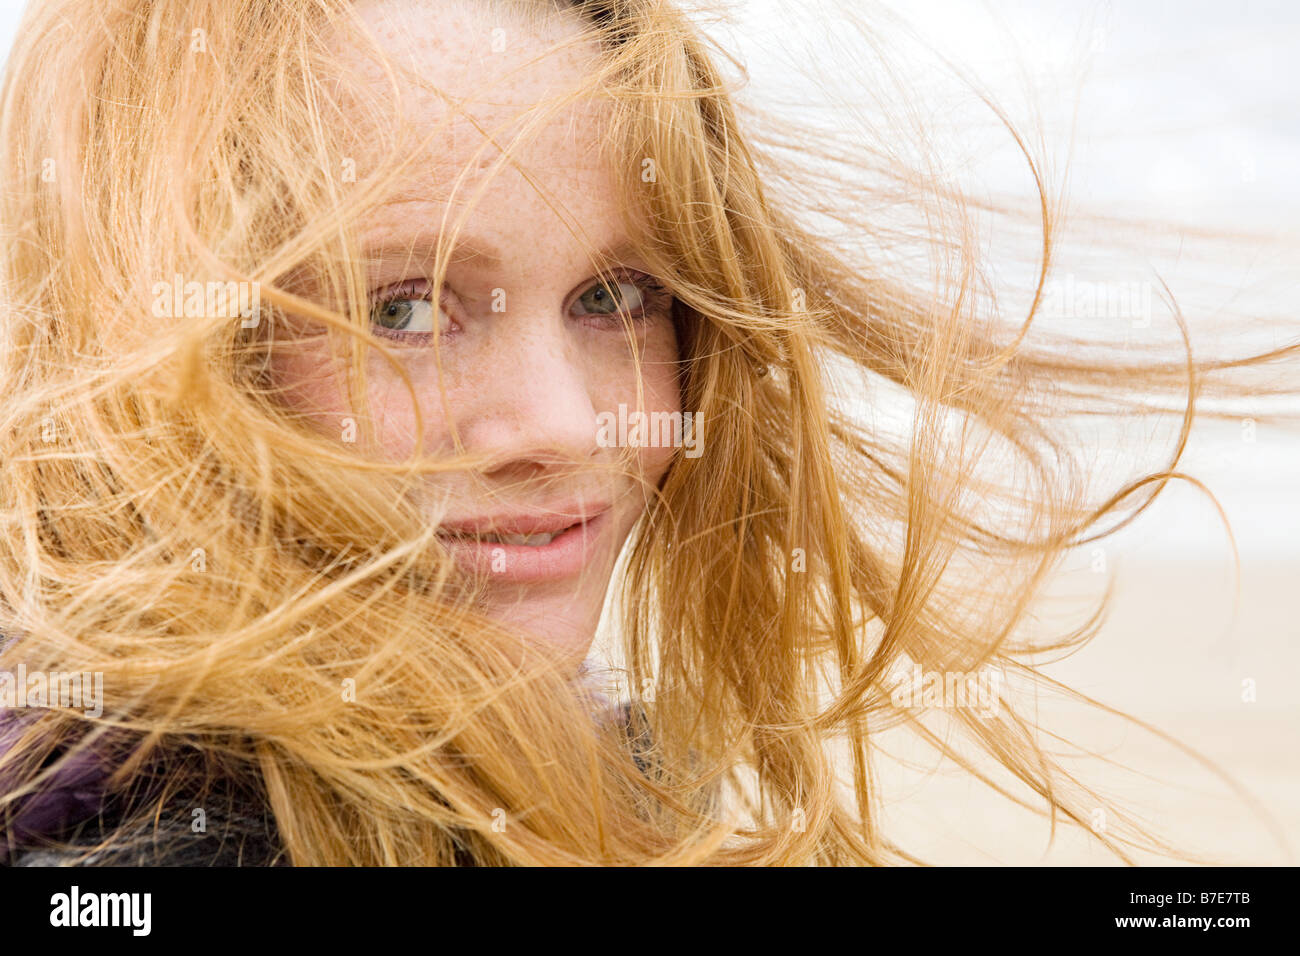 Woman with hair blowing in breeze - Stock Image